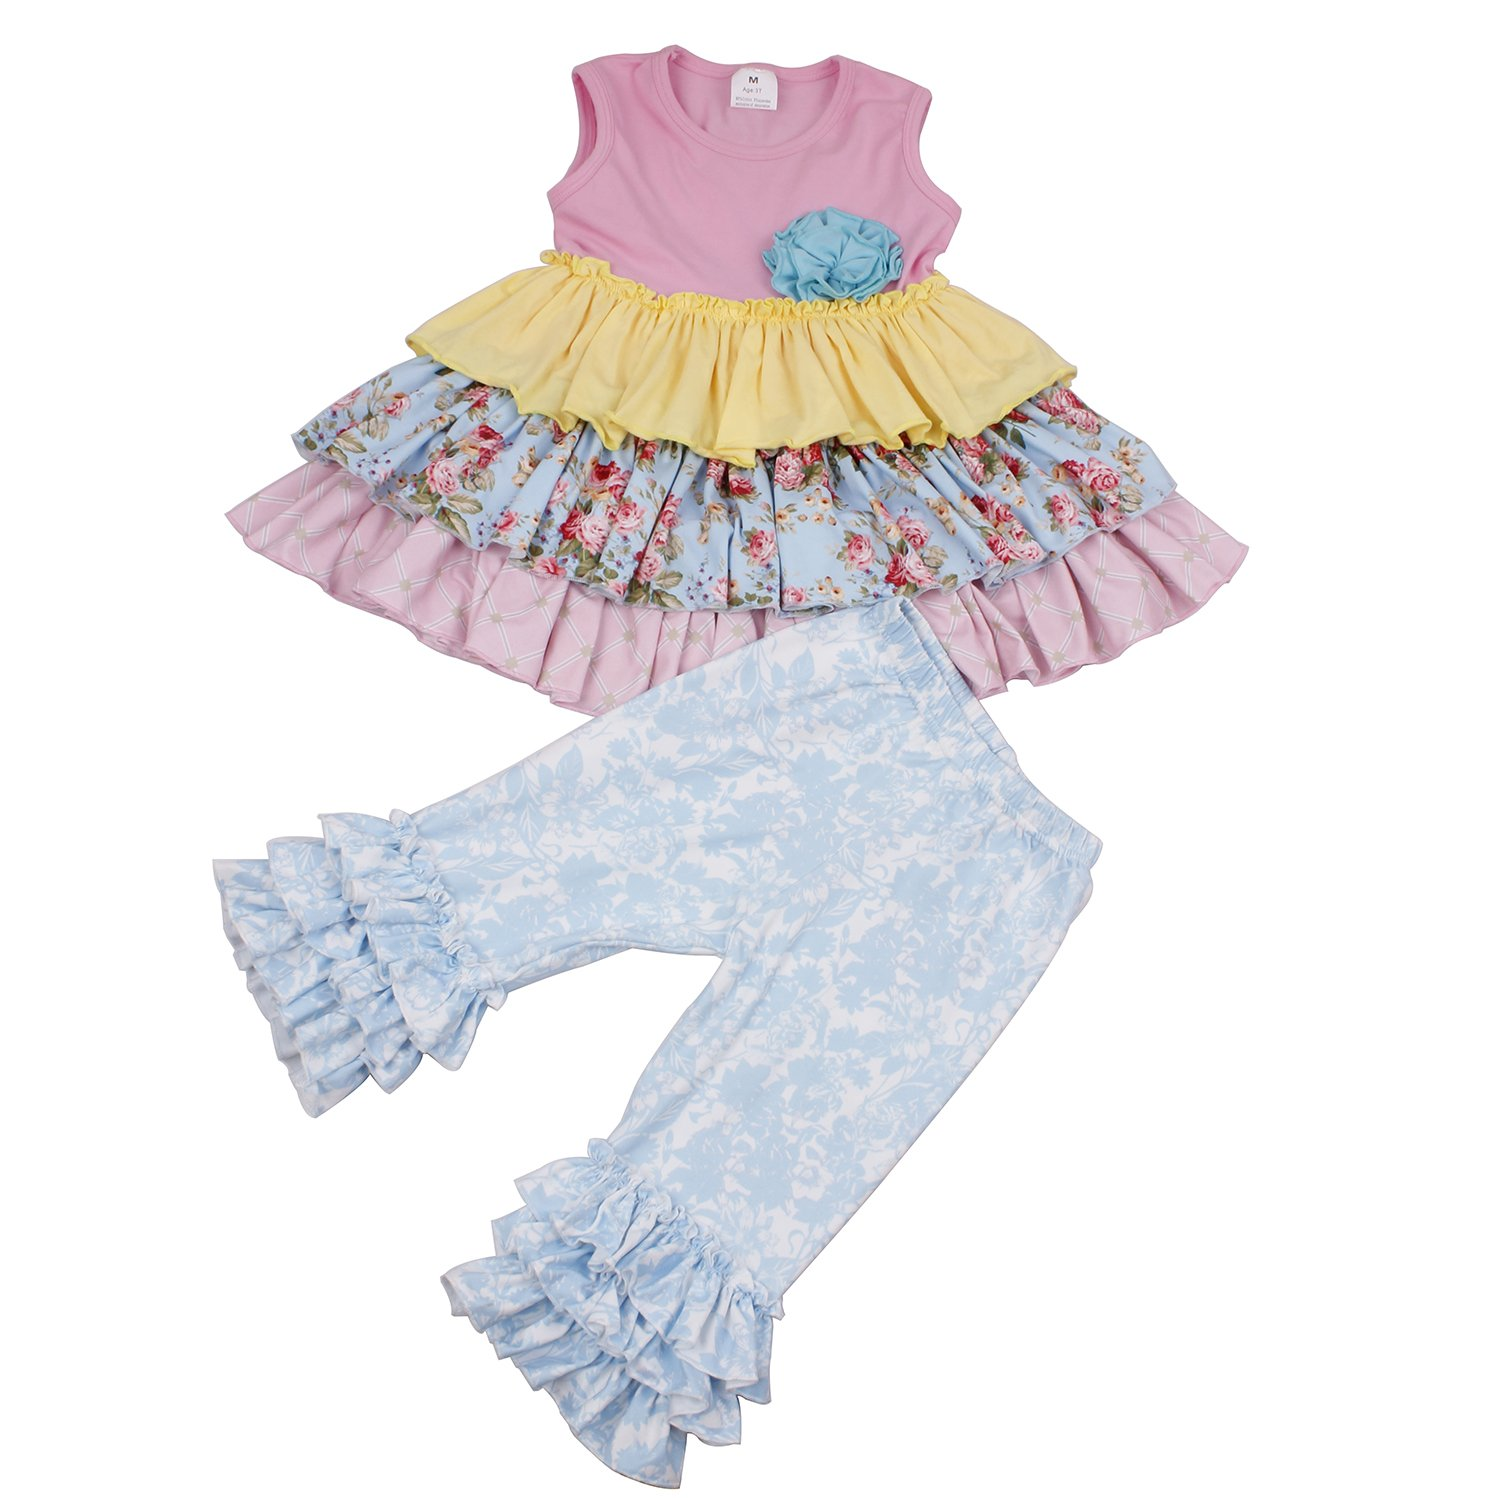 Yliyang Kids Girl 2 Pieces Summer Dress Set Cute Ruffles Dress Pants Outfit Set